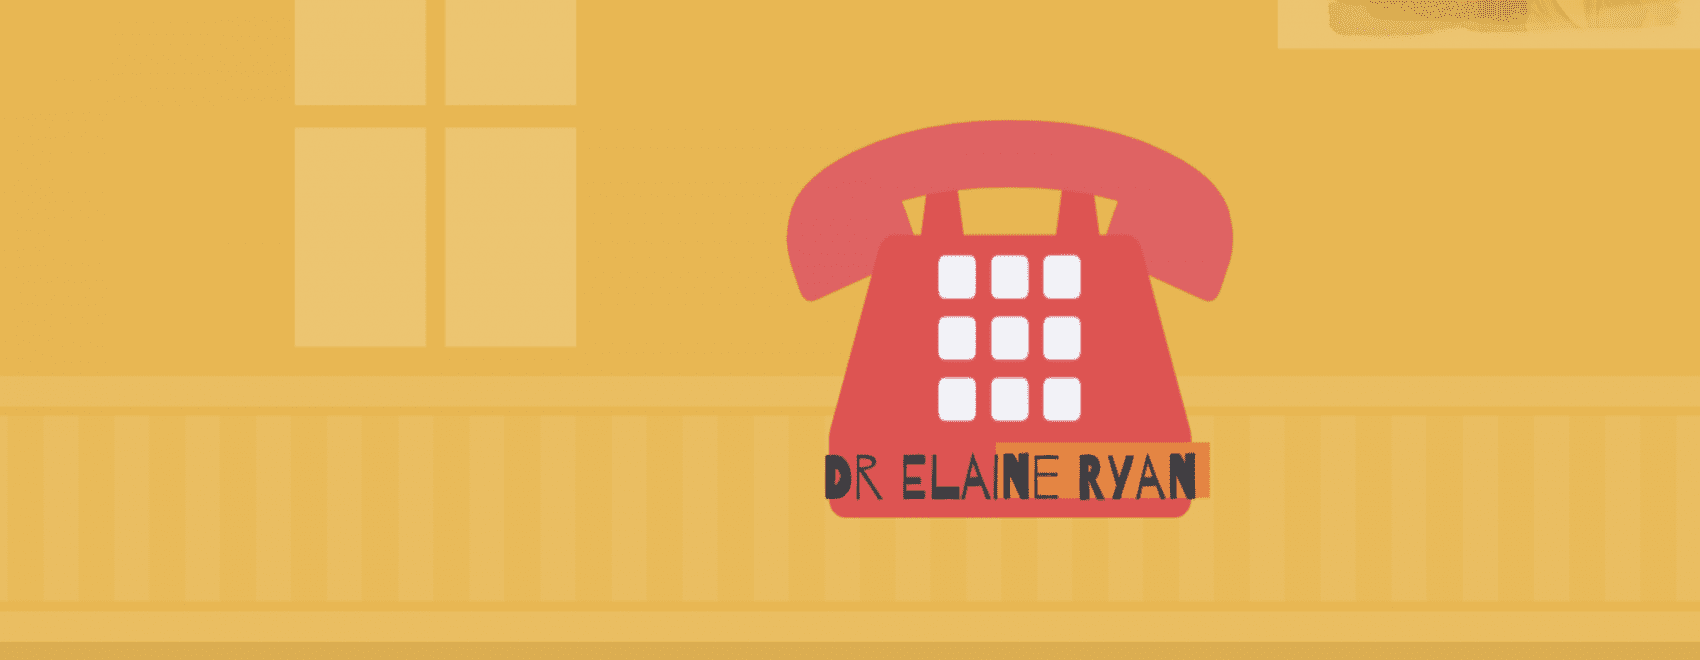 cartoon image of telephone and Dr Elaine Ryan